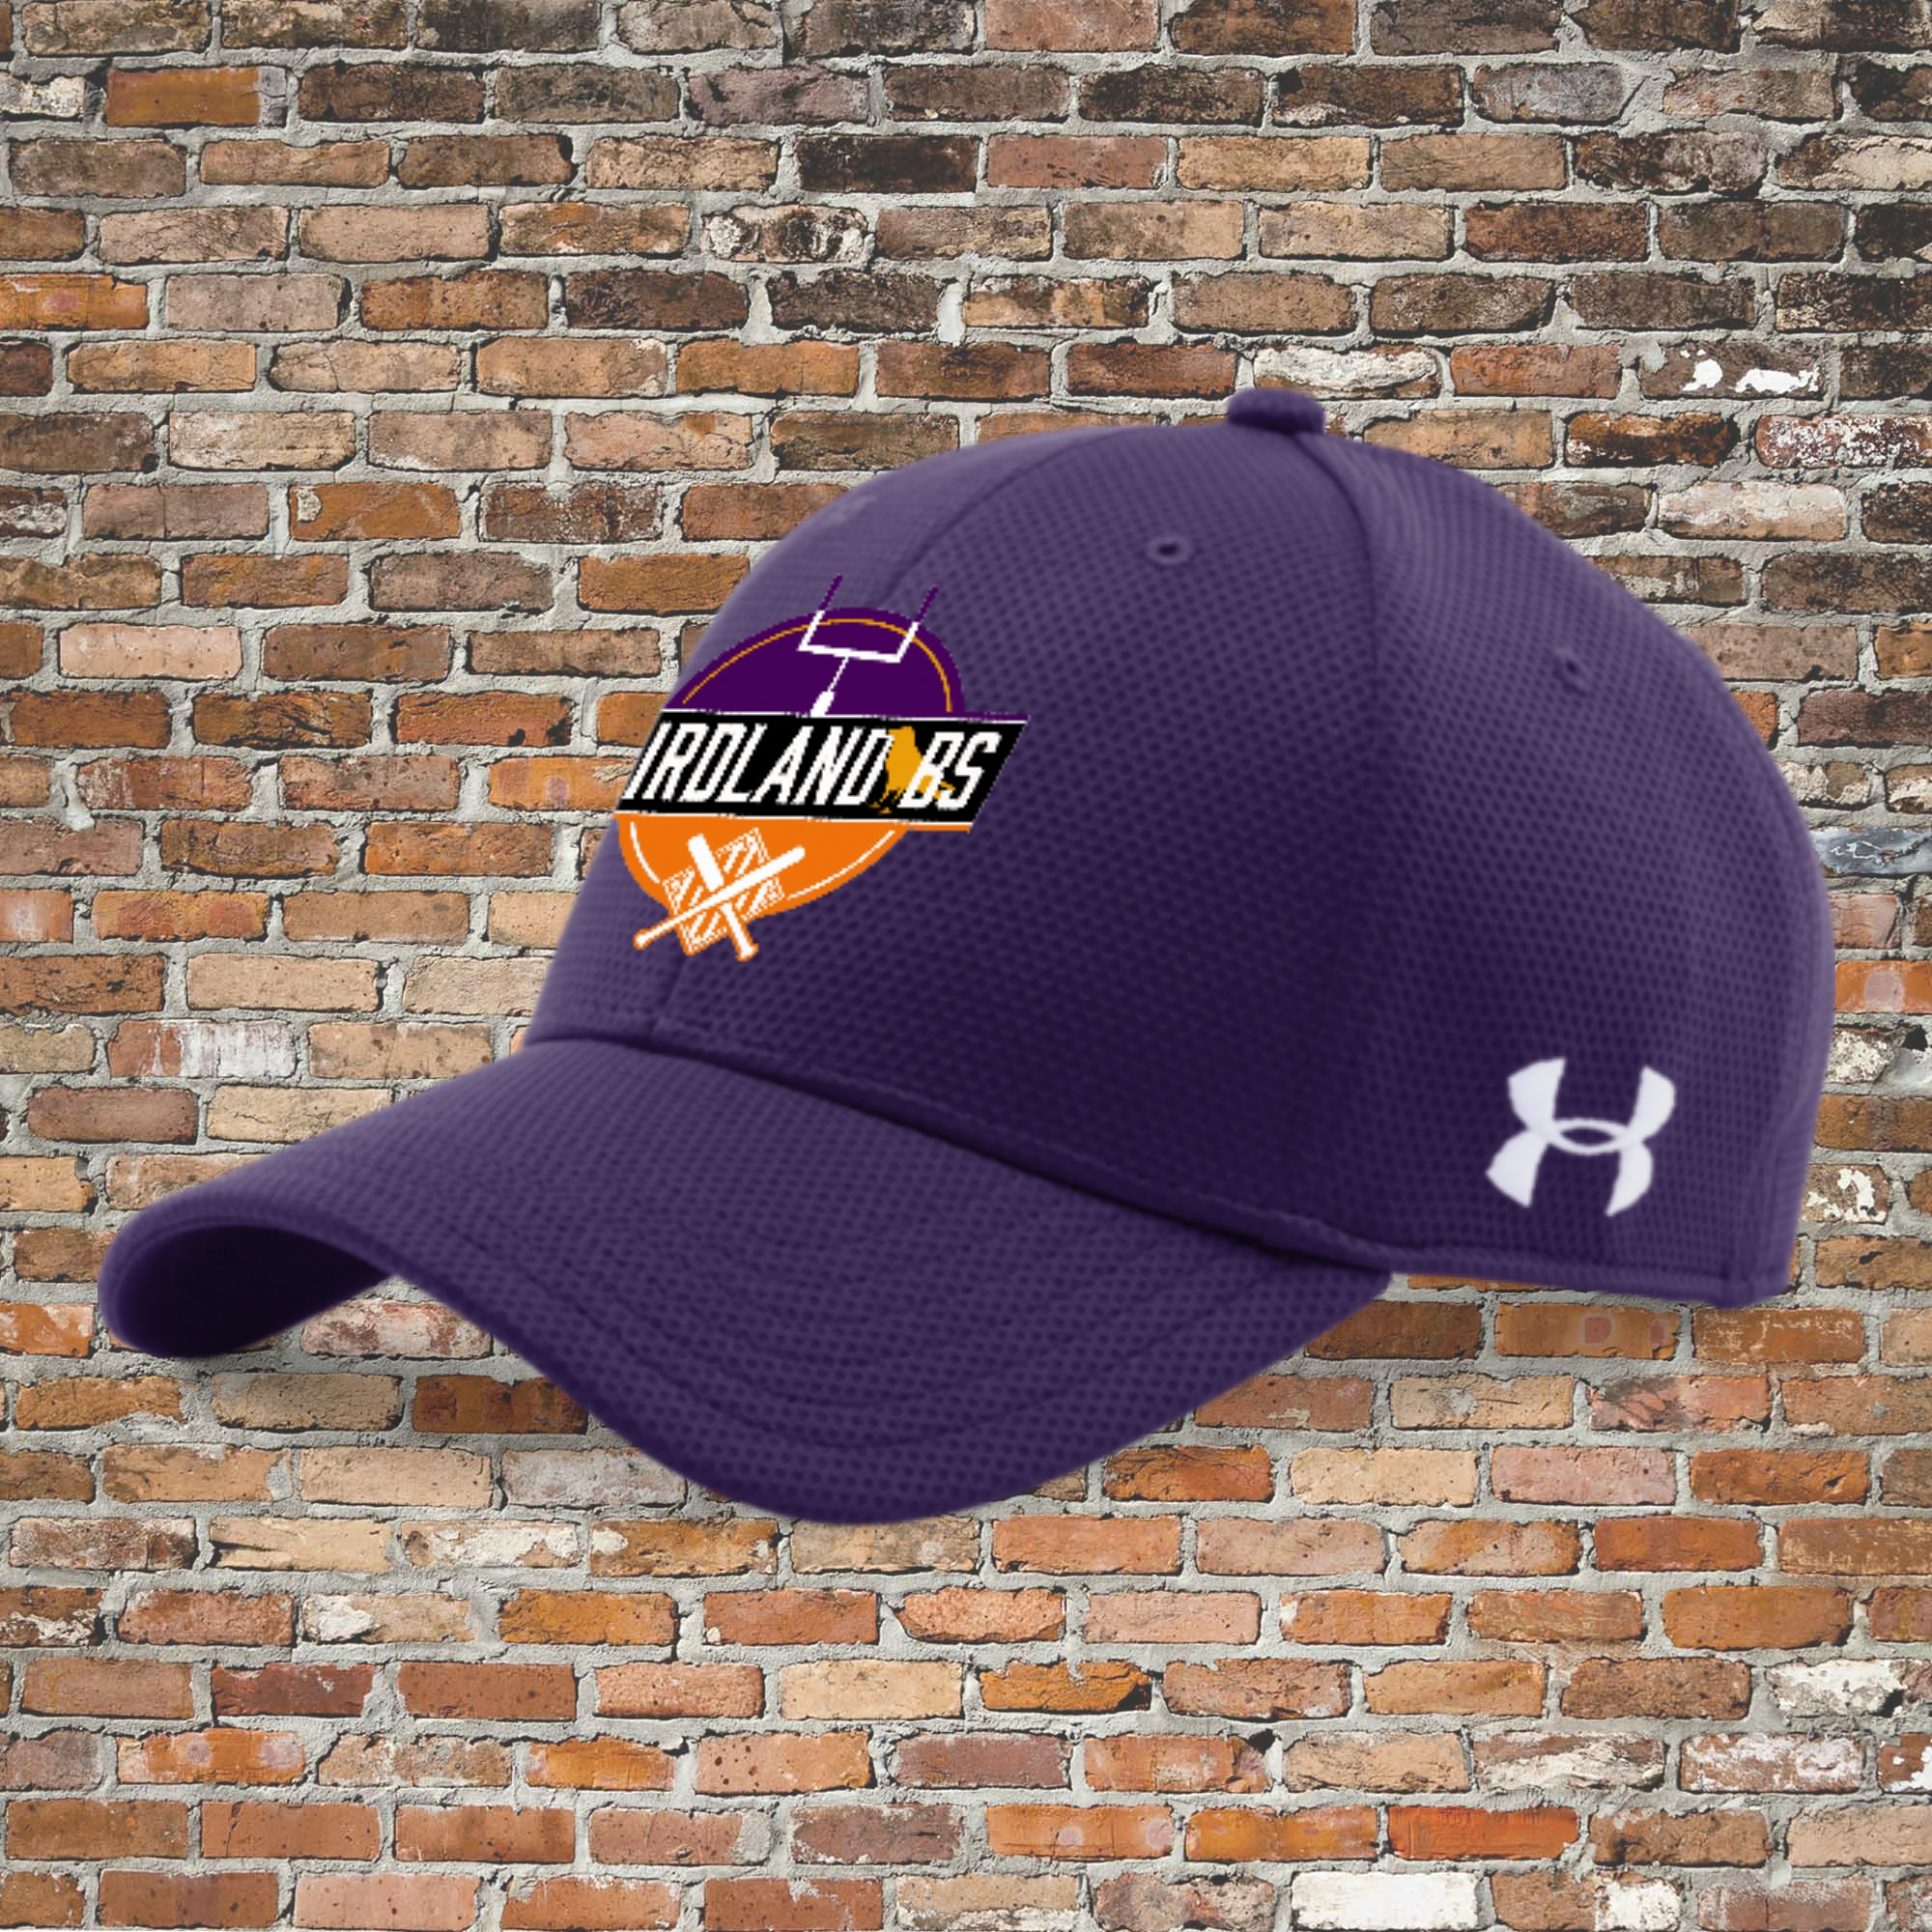 Under Armour Men's Curved Stretch Cap (Purple): Click for Special Pricing